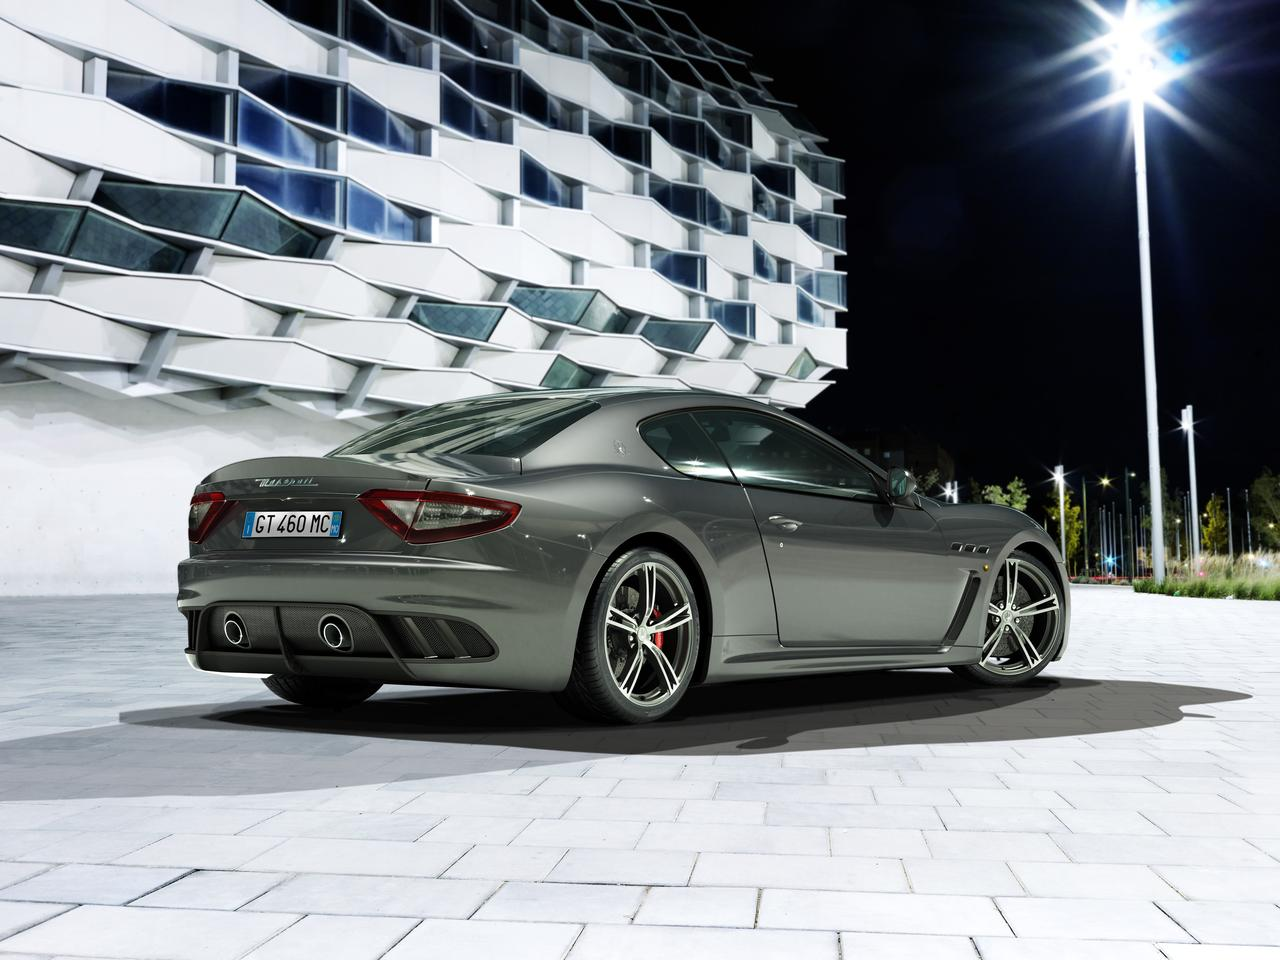 Originally launched in 2010 as a two-seat coupe, the MC Stradale is an upgraded GranTurismo inspired by the race cars of the Maserati Trofeo Championship